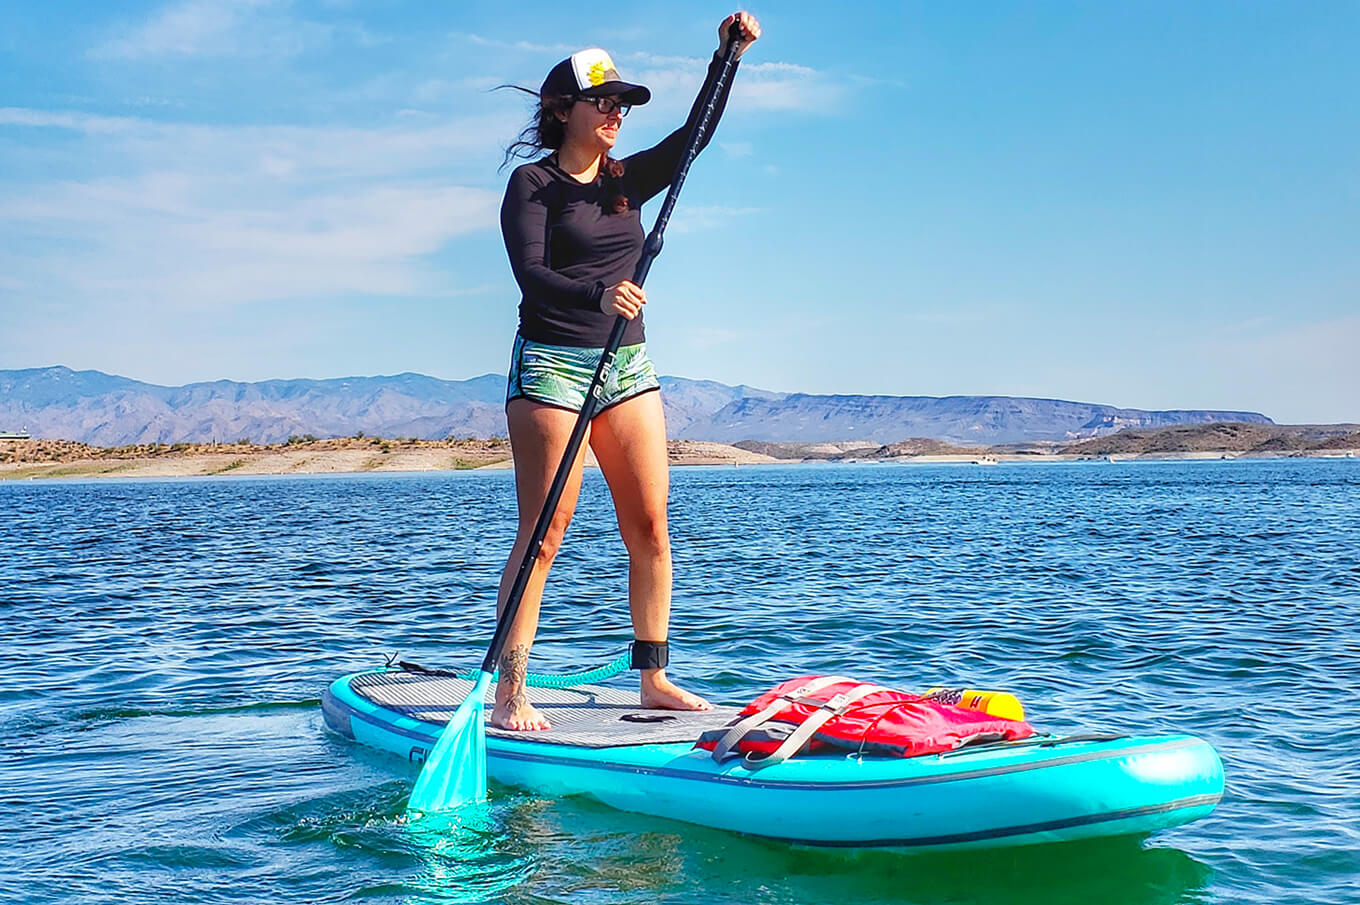 SUP Tips: Holding the Paddle the Right Way